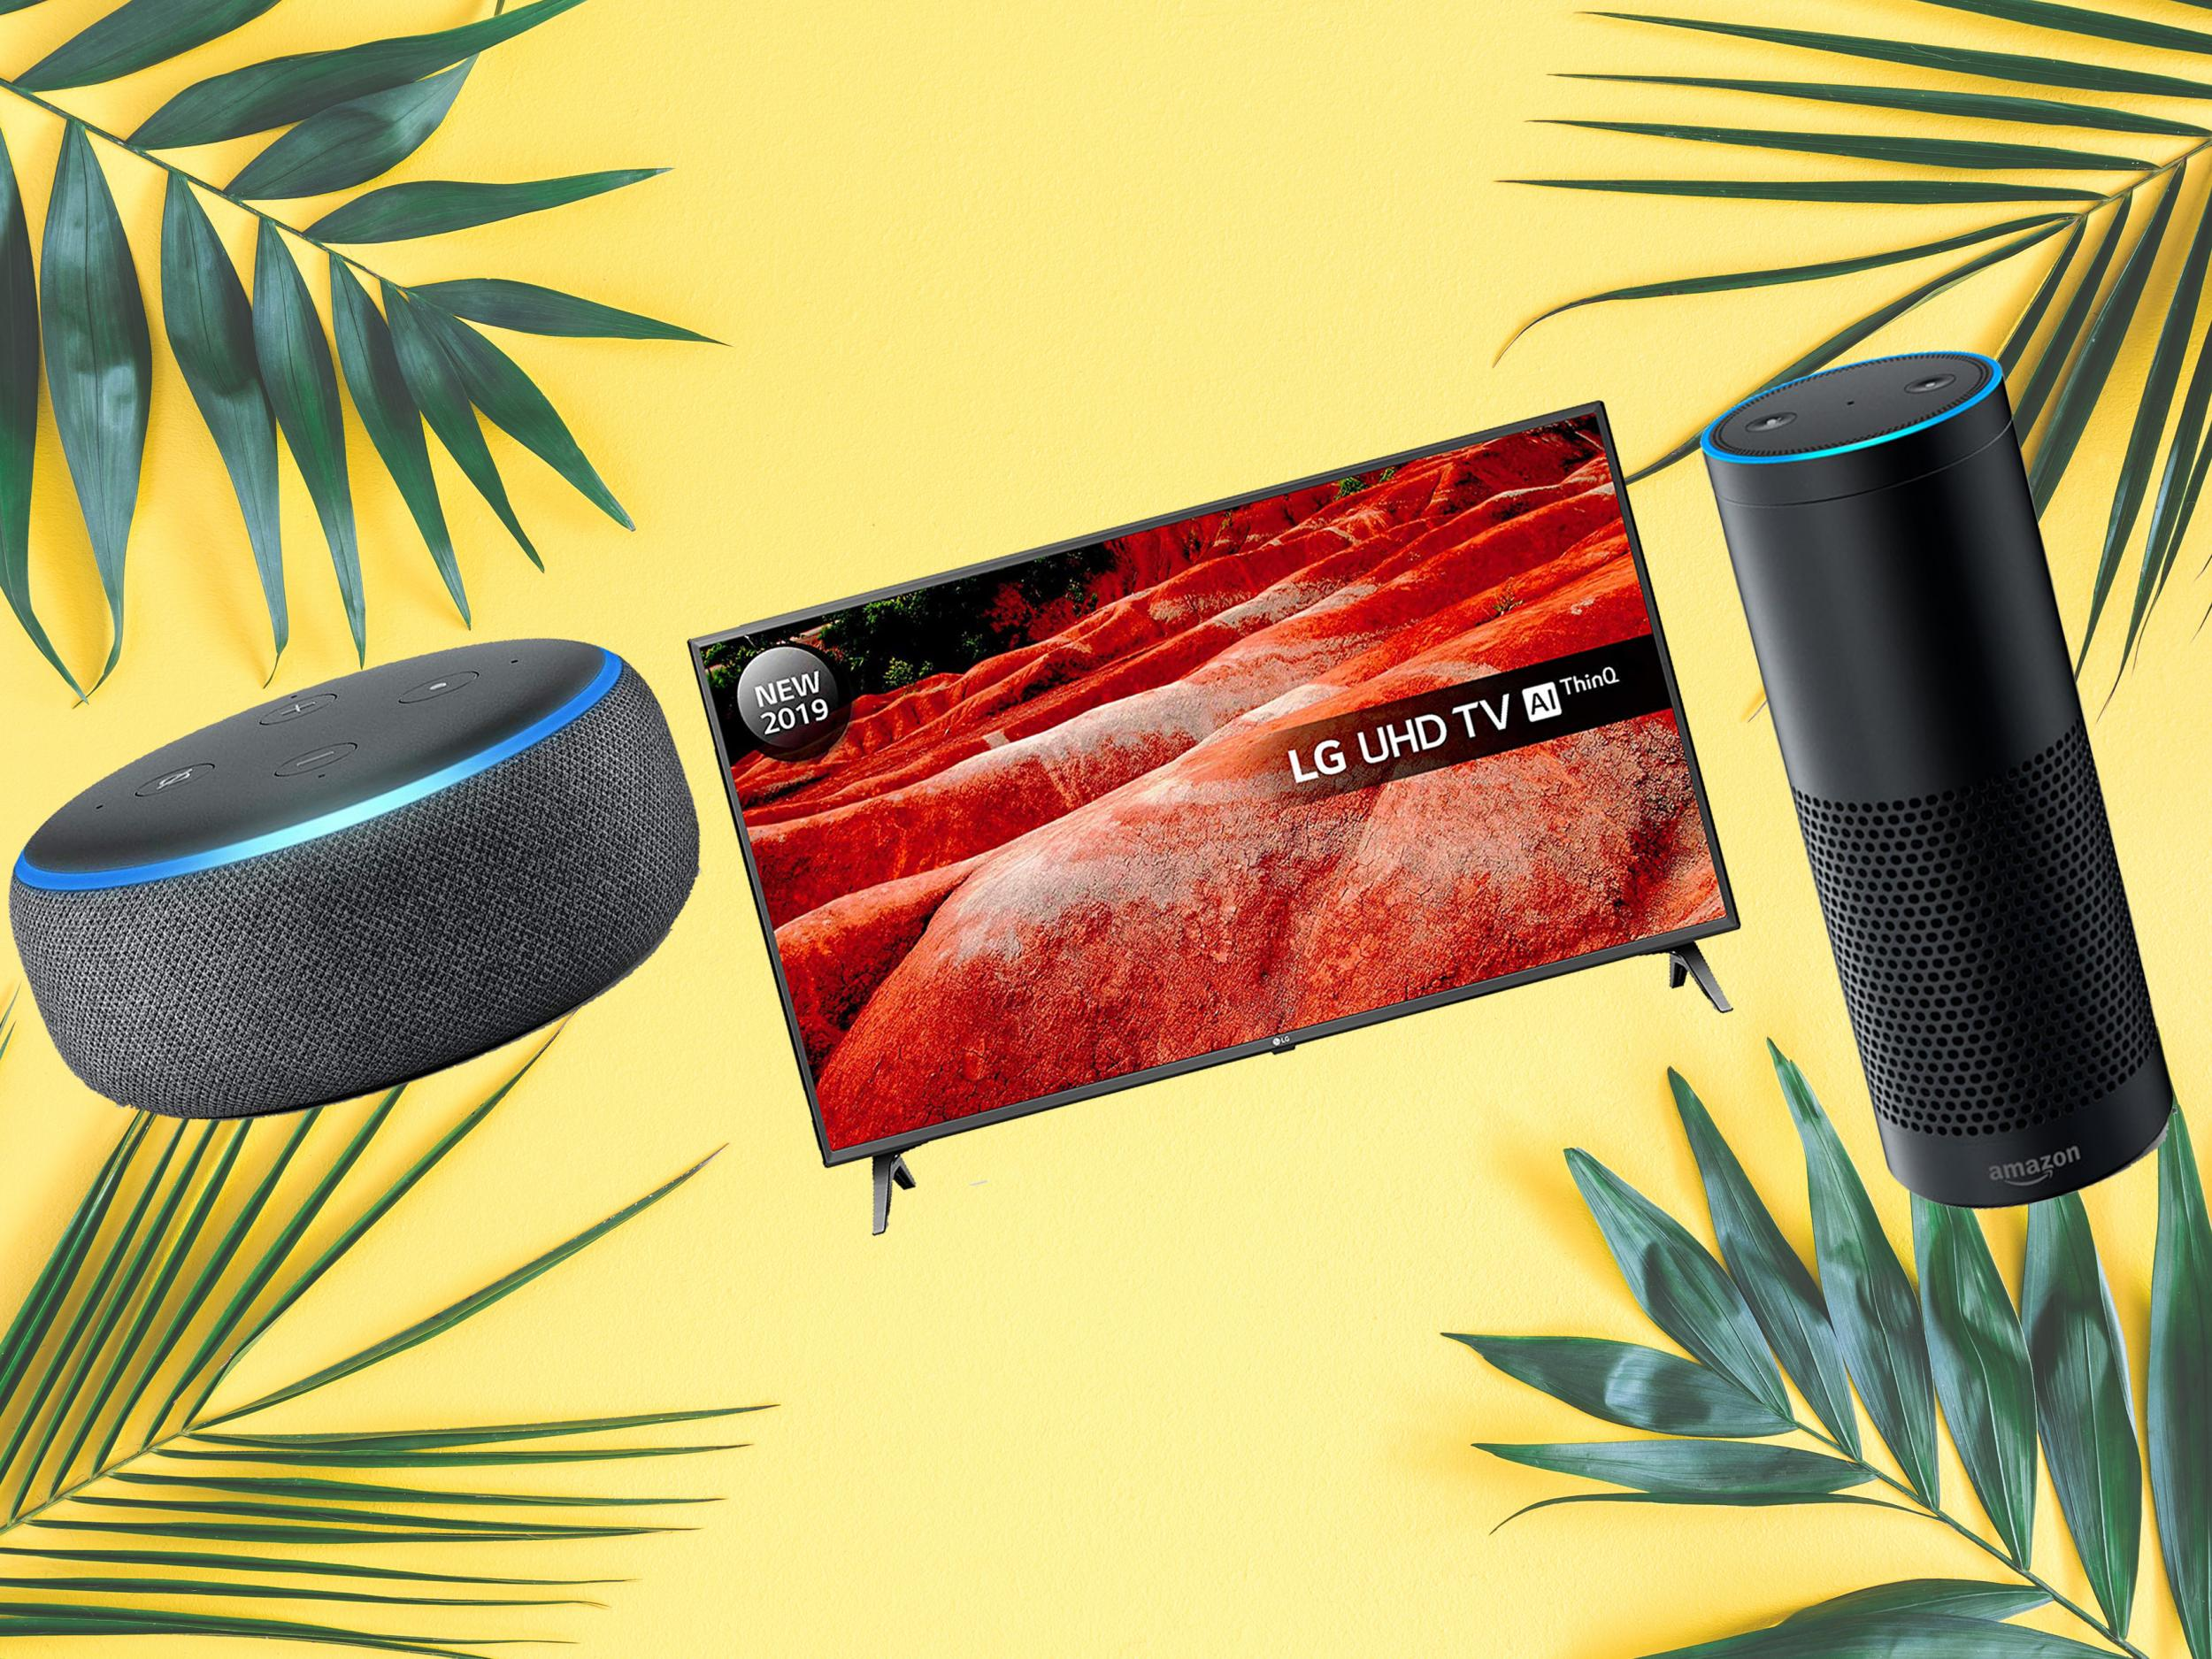 Best Cyber Monday Amazon deals: Best offers live to buy today